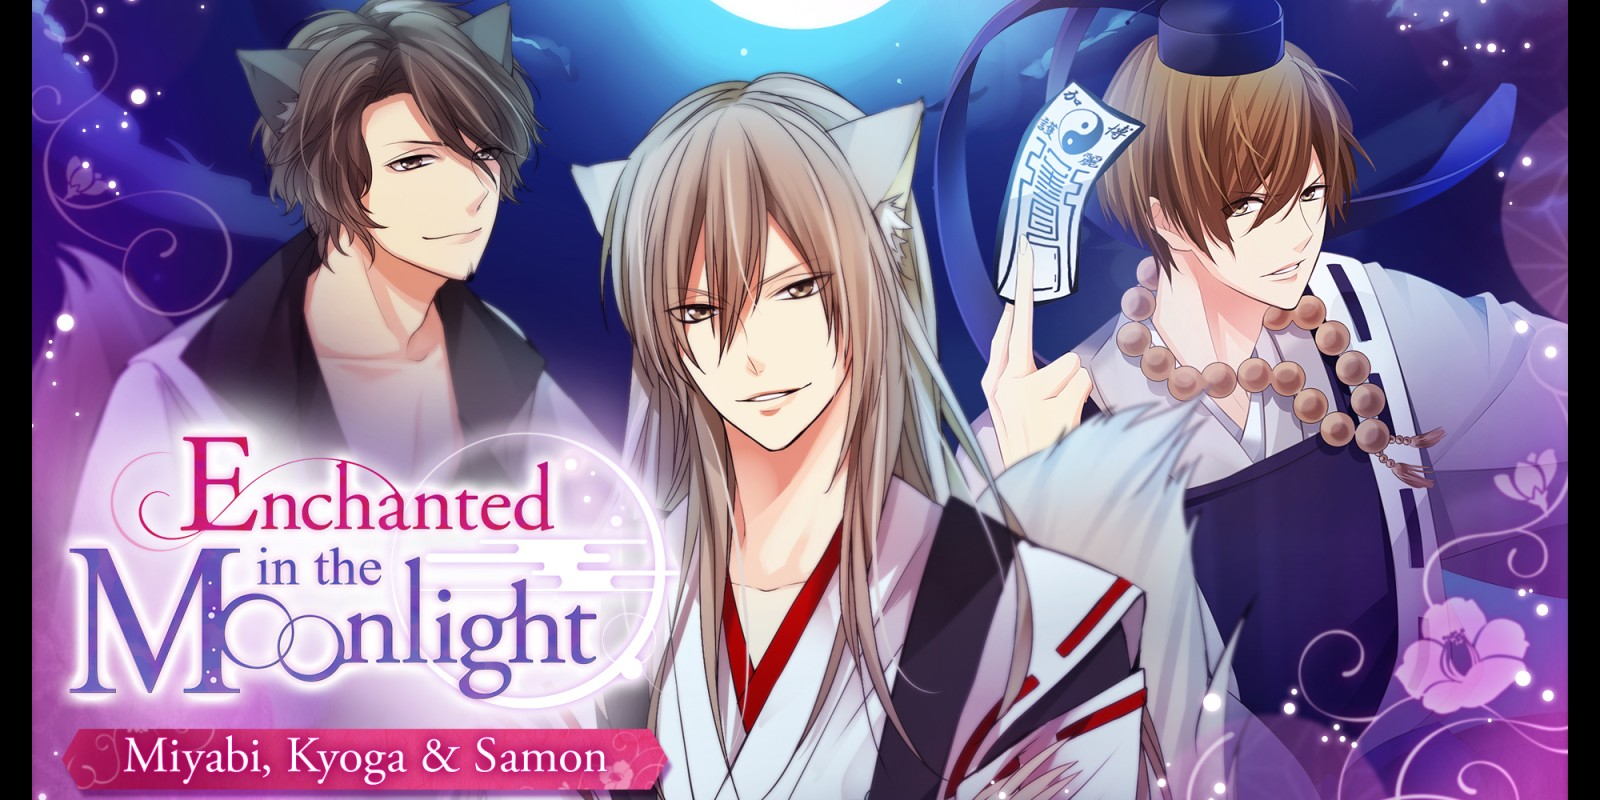 Enchanted in the Moonlight - Miyabi, Kyoga & Samon -